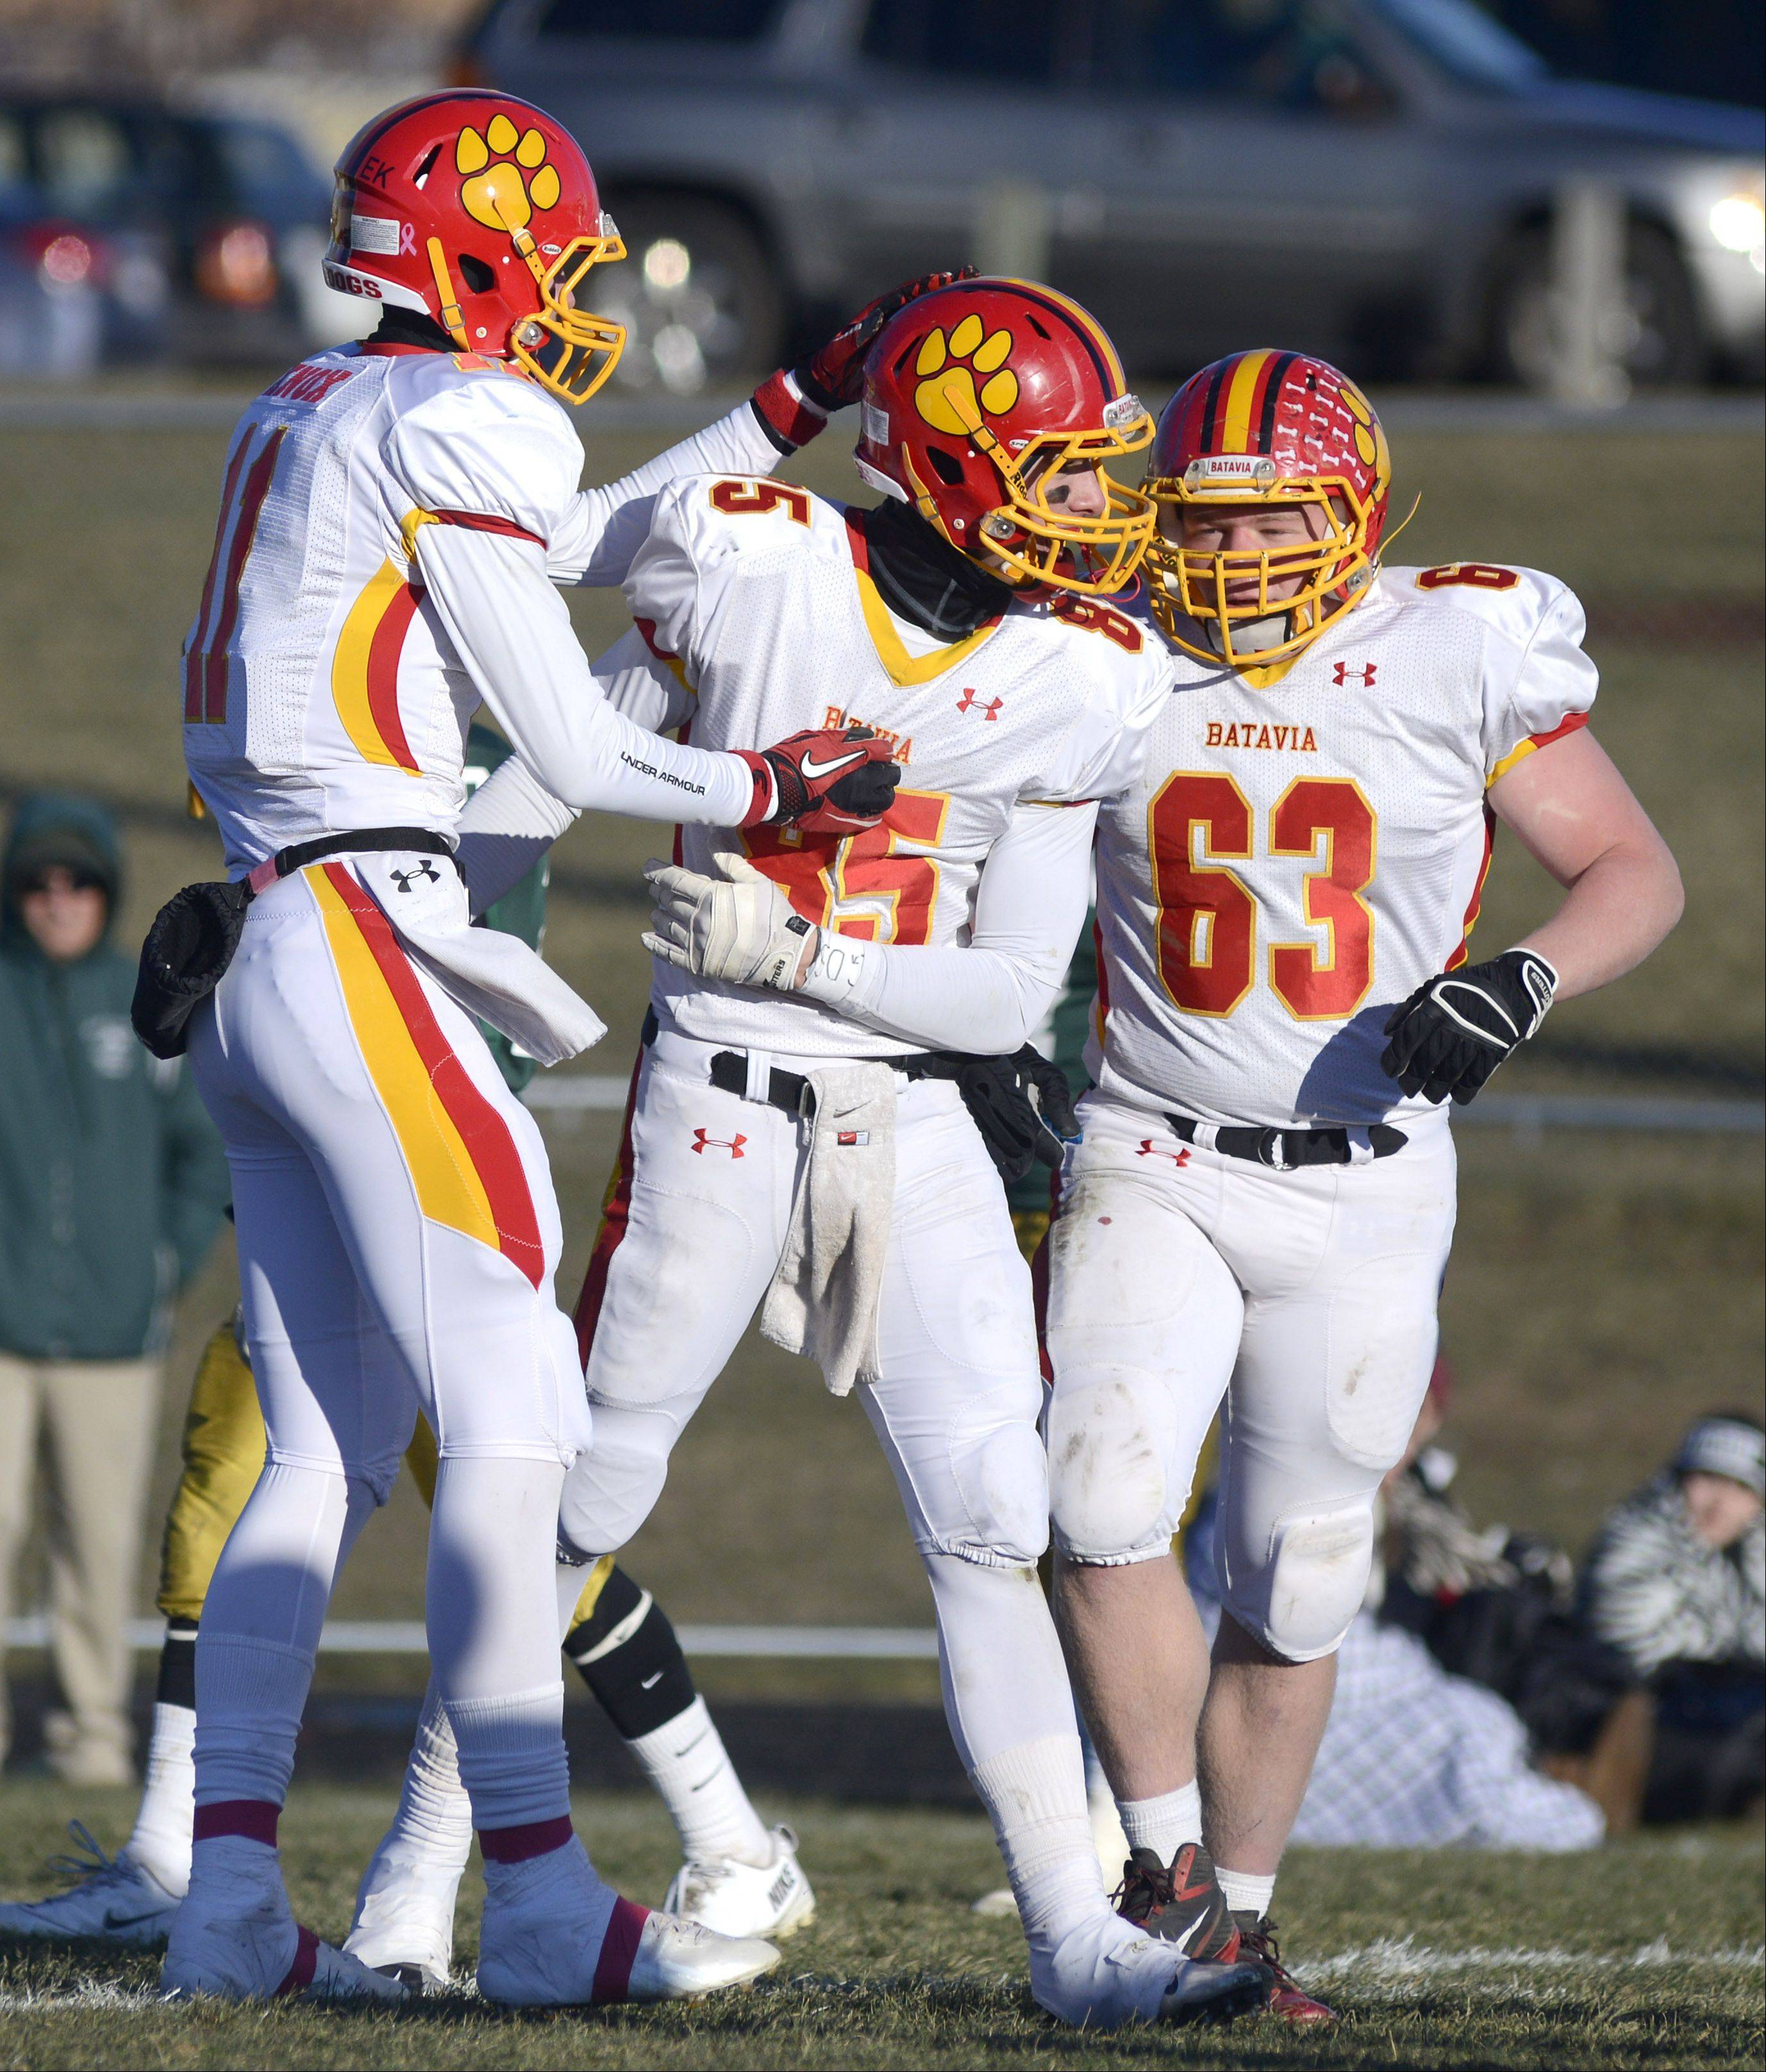 Batavia's Tucker Knox, left, and Connor McKeehan, right, congratulate teammate Jordan Zwart, center, on his touchdown in the fourth quarter of the Class 6A semifinal game on Saturday, November 23.